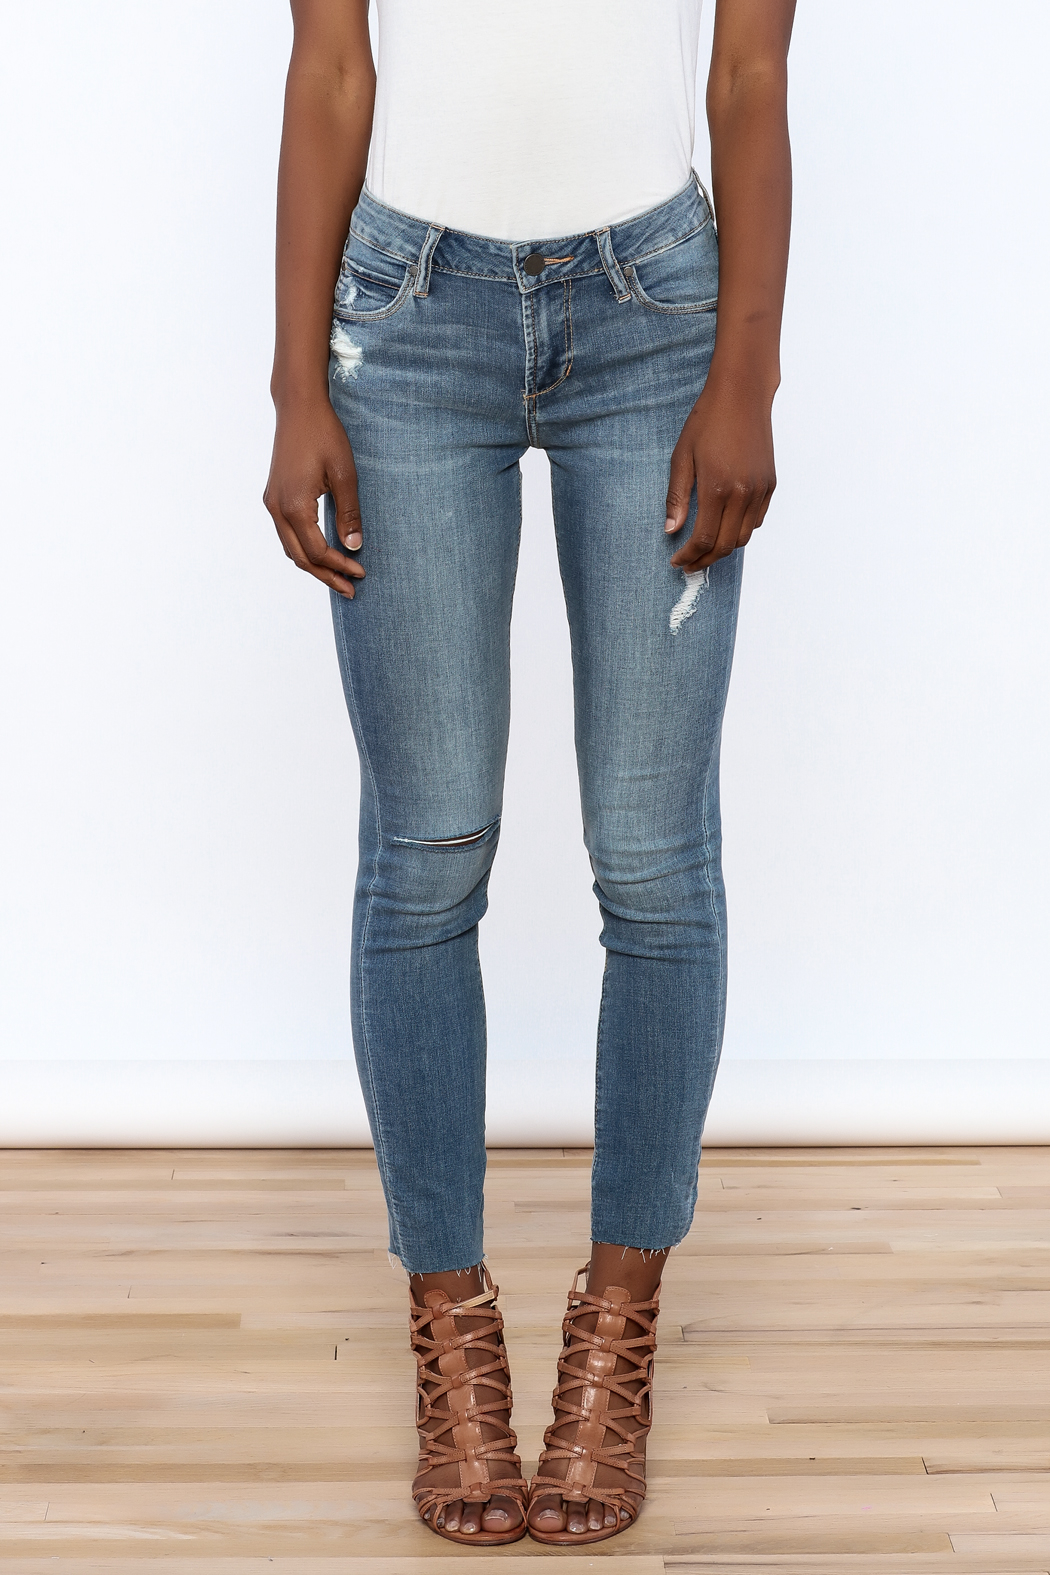 Articles of Society Dark Denim Distressed Jeans - Side Cropped Image